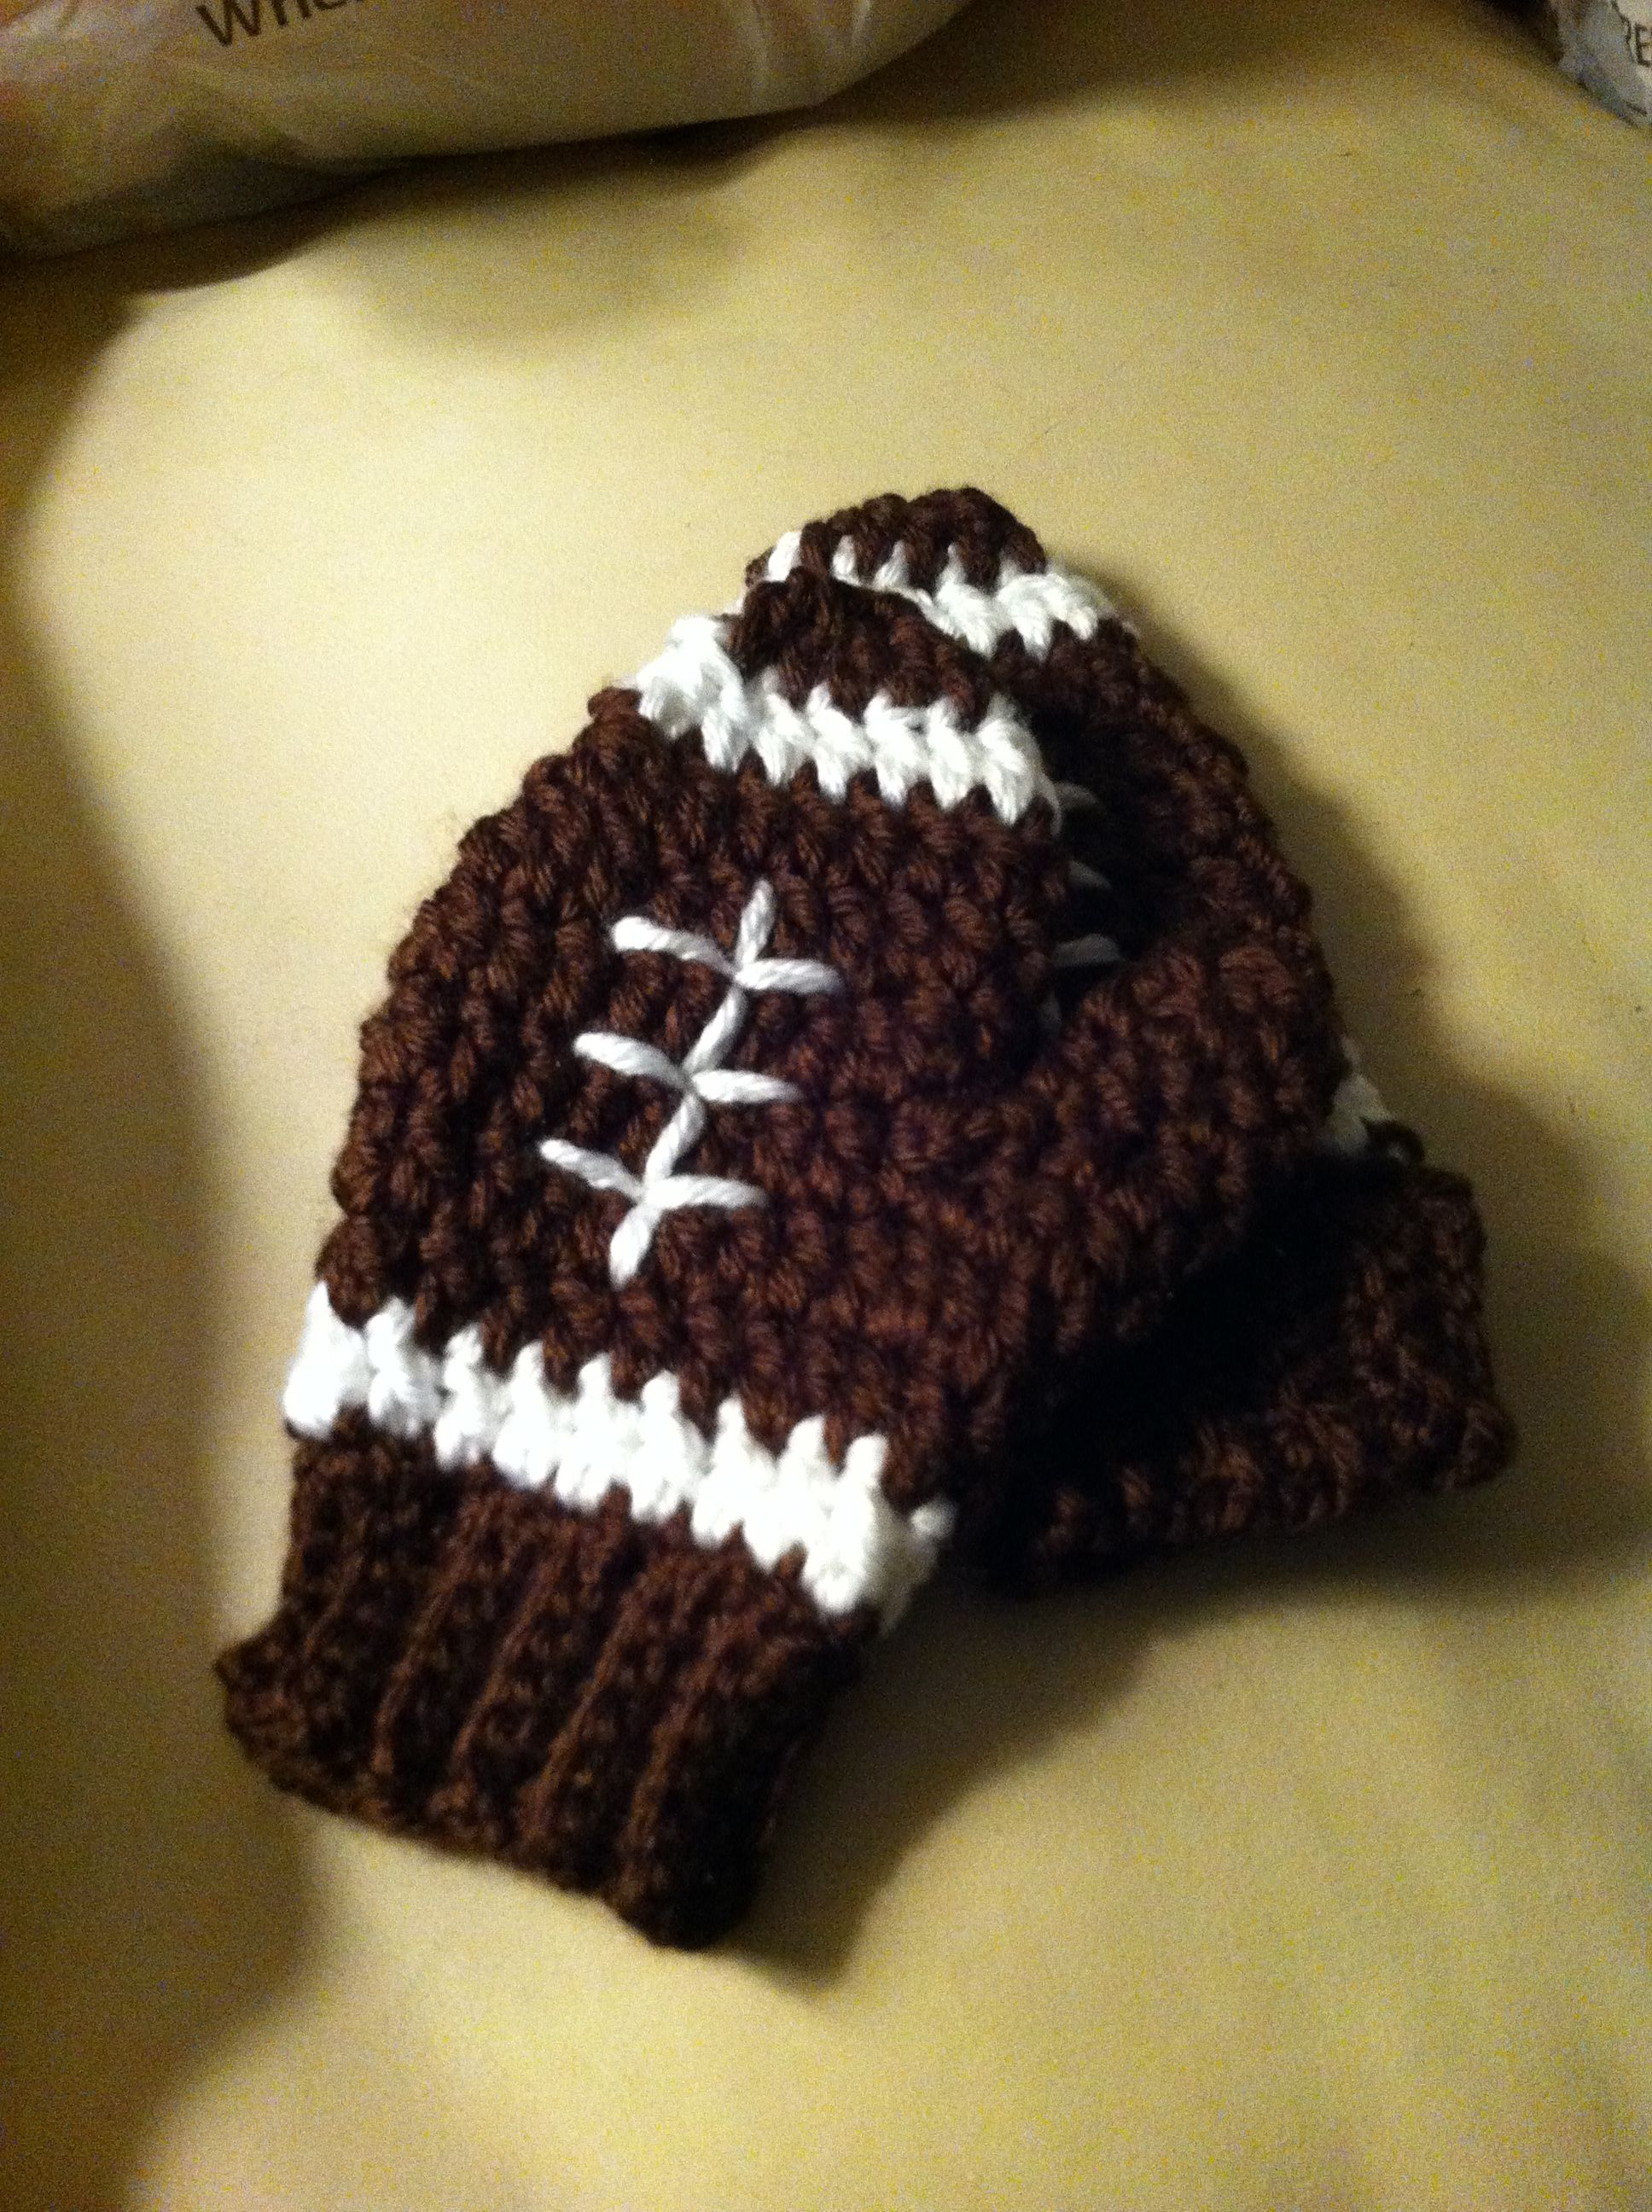 Mittens crochet football for my youngest nephew for christmas mittens crochet football for my youngest nephew for christmas bankloansurffo Choice Image